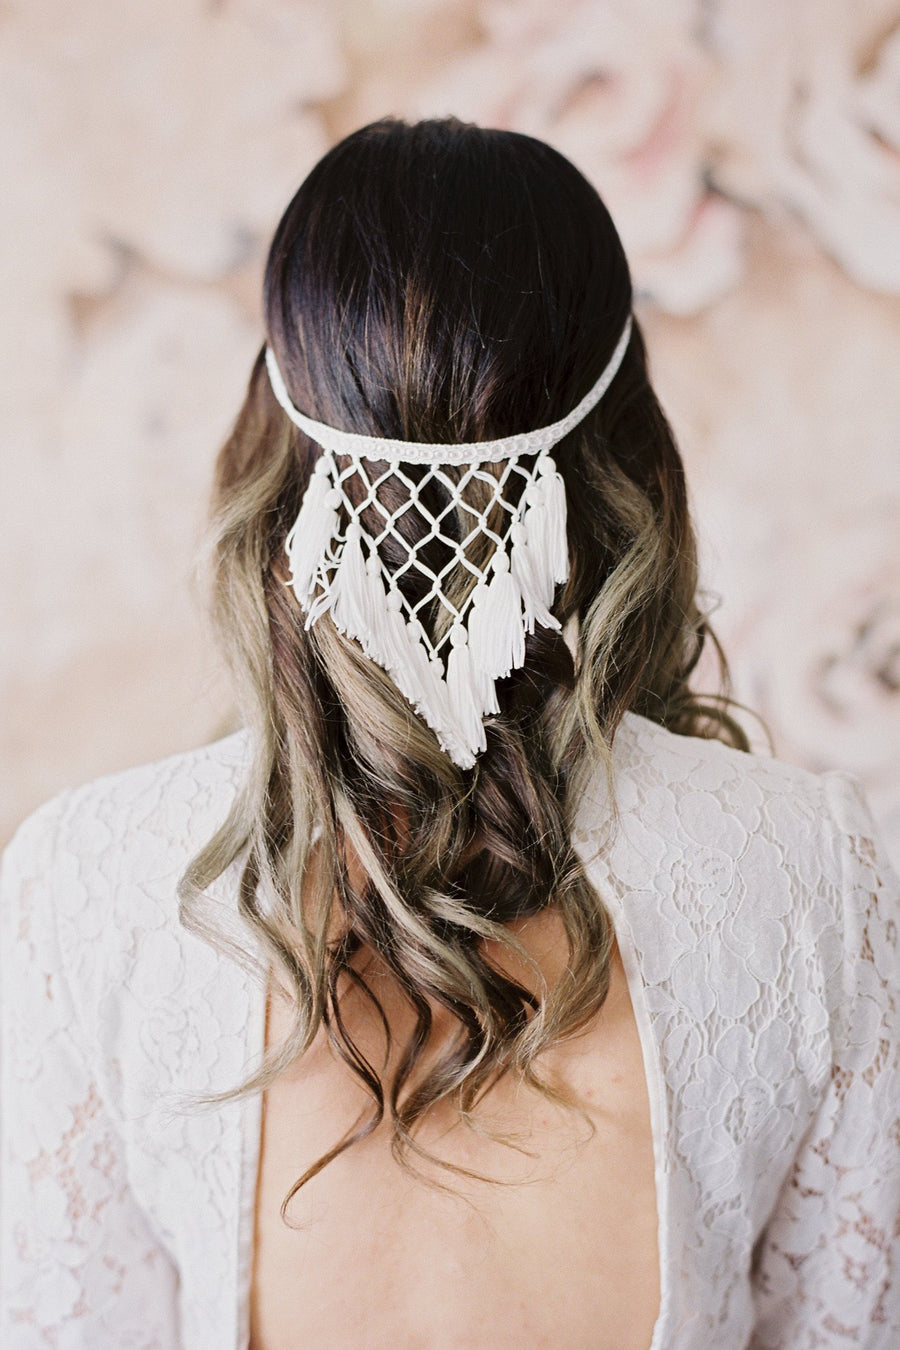 Danani Style #215 | Bride with long hair in soft curls wearing dreamcatcher fringe halo headpiece with tassels and macrame. Dress is Mojave by Elizabeth Dye. Hand painted wedding backdrop by Wildfield Paper Co. | Loblee Photography